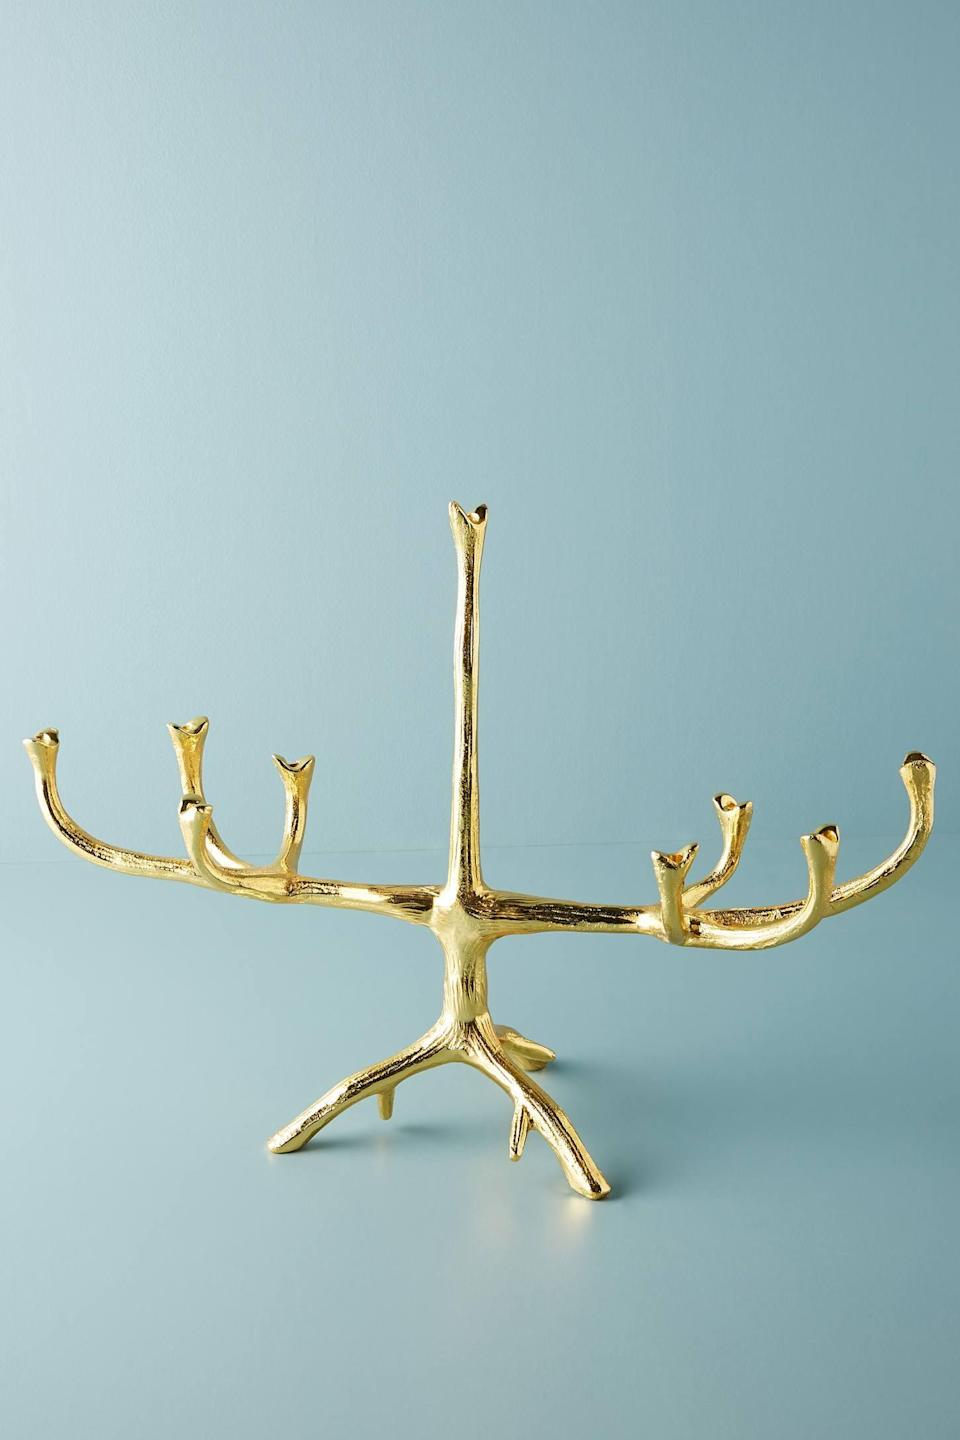 """<p>The <a href=""""https://www.popsugar.com/buy/Gold-Tree-Branch-Menorah-502210?p_name=Gold%20Tree%20Branch%20Menorah&retailer=anthropologie.com&pid=502210&price=198&evar1=casa%3Aus&evar9=46615300&evar98=https%3A%2F%2Fwww.popsugar.com%2Fhome%2Fphoto-gallery%2F46615300%2Fimage%2F46767568%2FGold-Tree-Branch-Menorah&list1=shopping%2Canthropologie%2Choliday%2Cchristmas%2Cchristmas%20decorations%2Choliday%20decor%2Chome%20shopping&prop13=mobile&pdata=1"""" rel=""""nofollow noopener"""" class=""""link rapid-noclick-resp"""" target=""""_blank"""" data-ylk=""""slk:Gold Tree Branch Menorah"""">Gold Tree Branch Menorah</a> ($198) has soft, beautiful branches.</p>"""